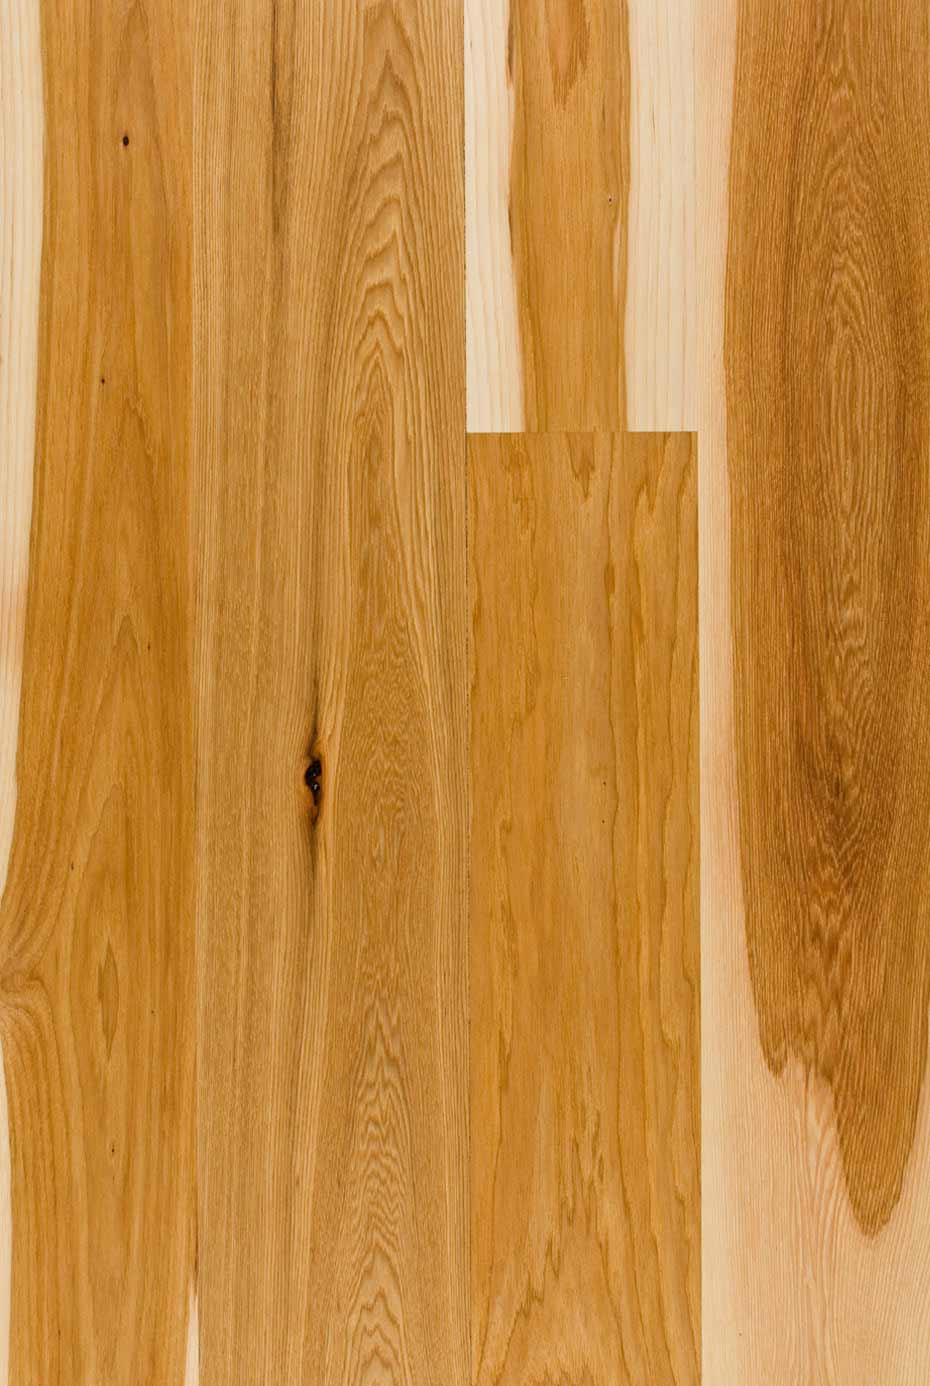 Harvest hickory flooring mountain lumber company for Hickory hardwood flooring